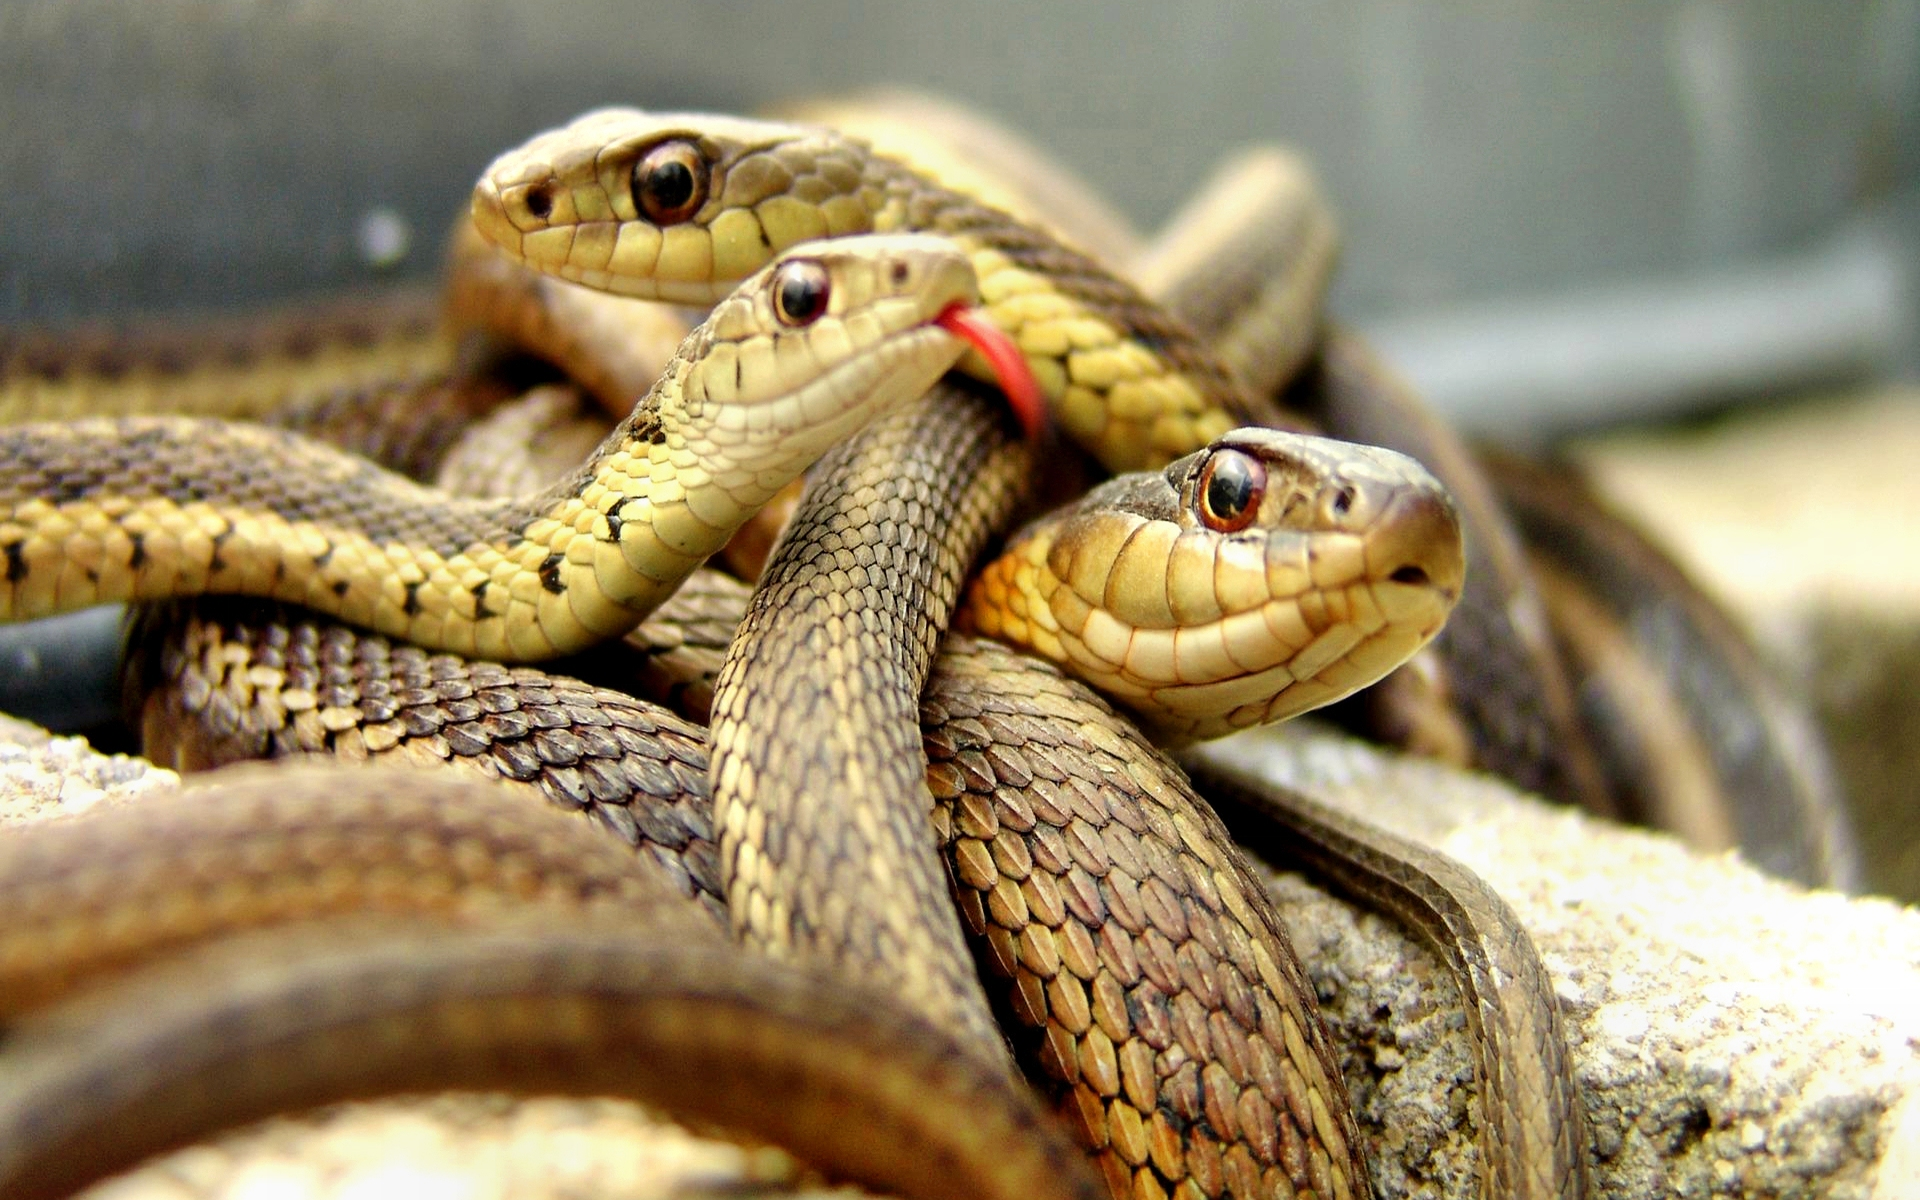 Scary Snakes wallpaper 58087